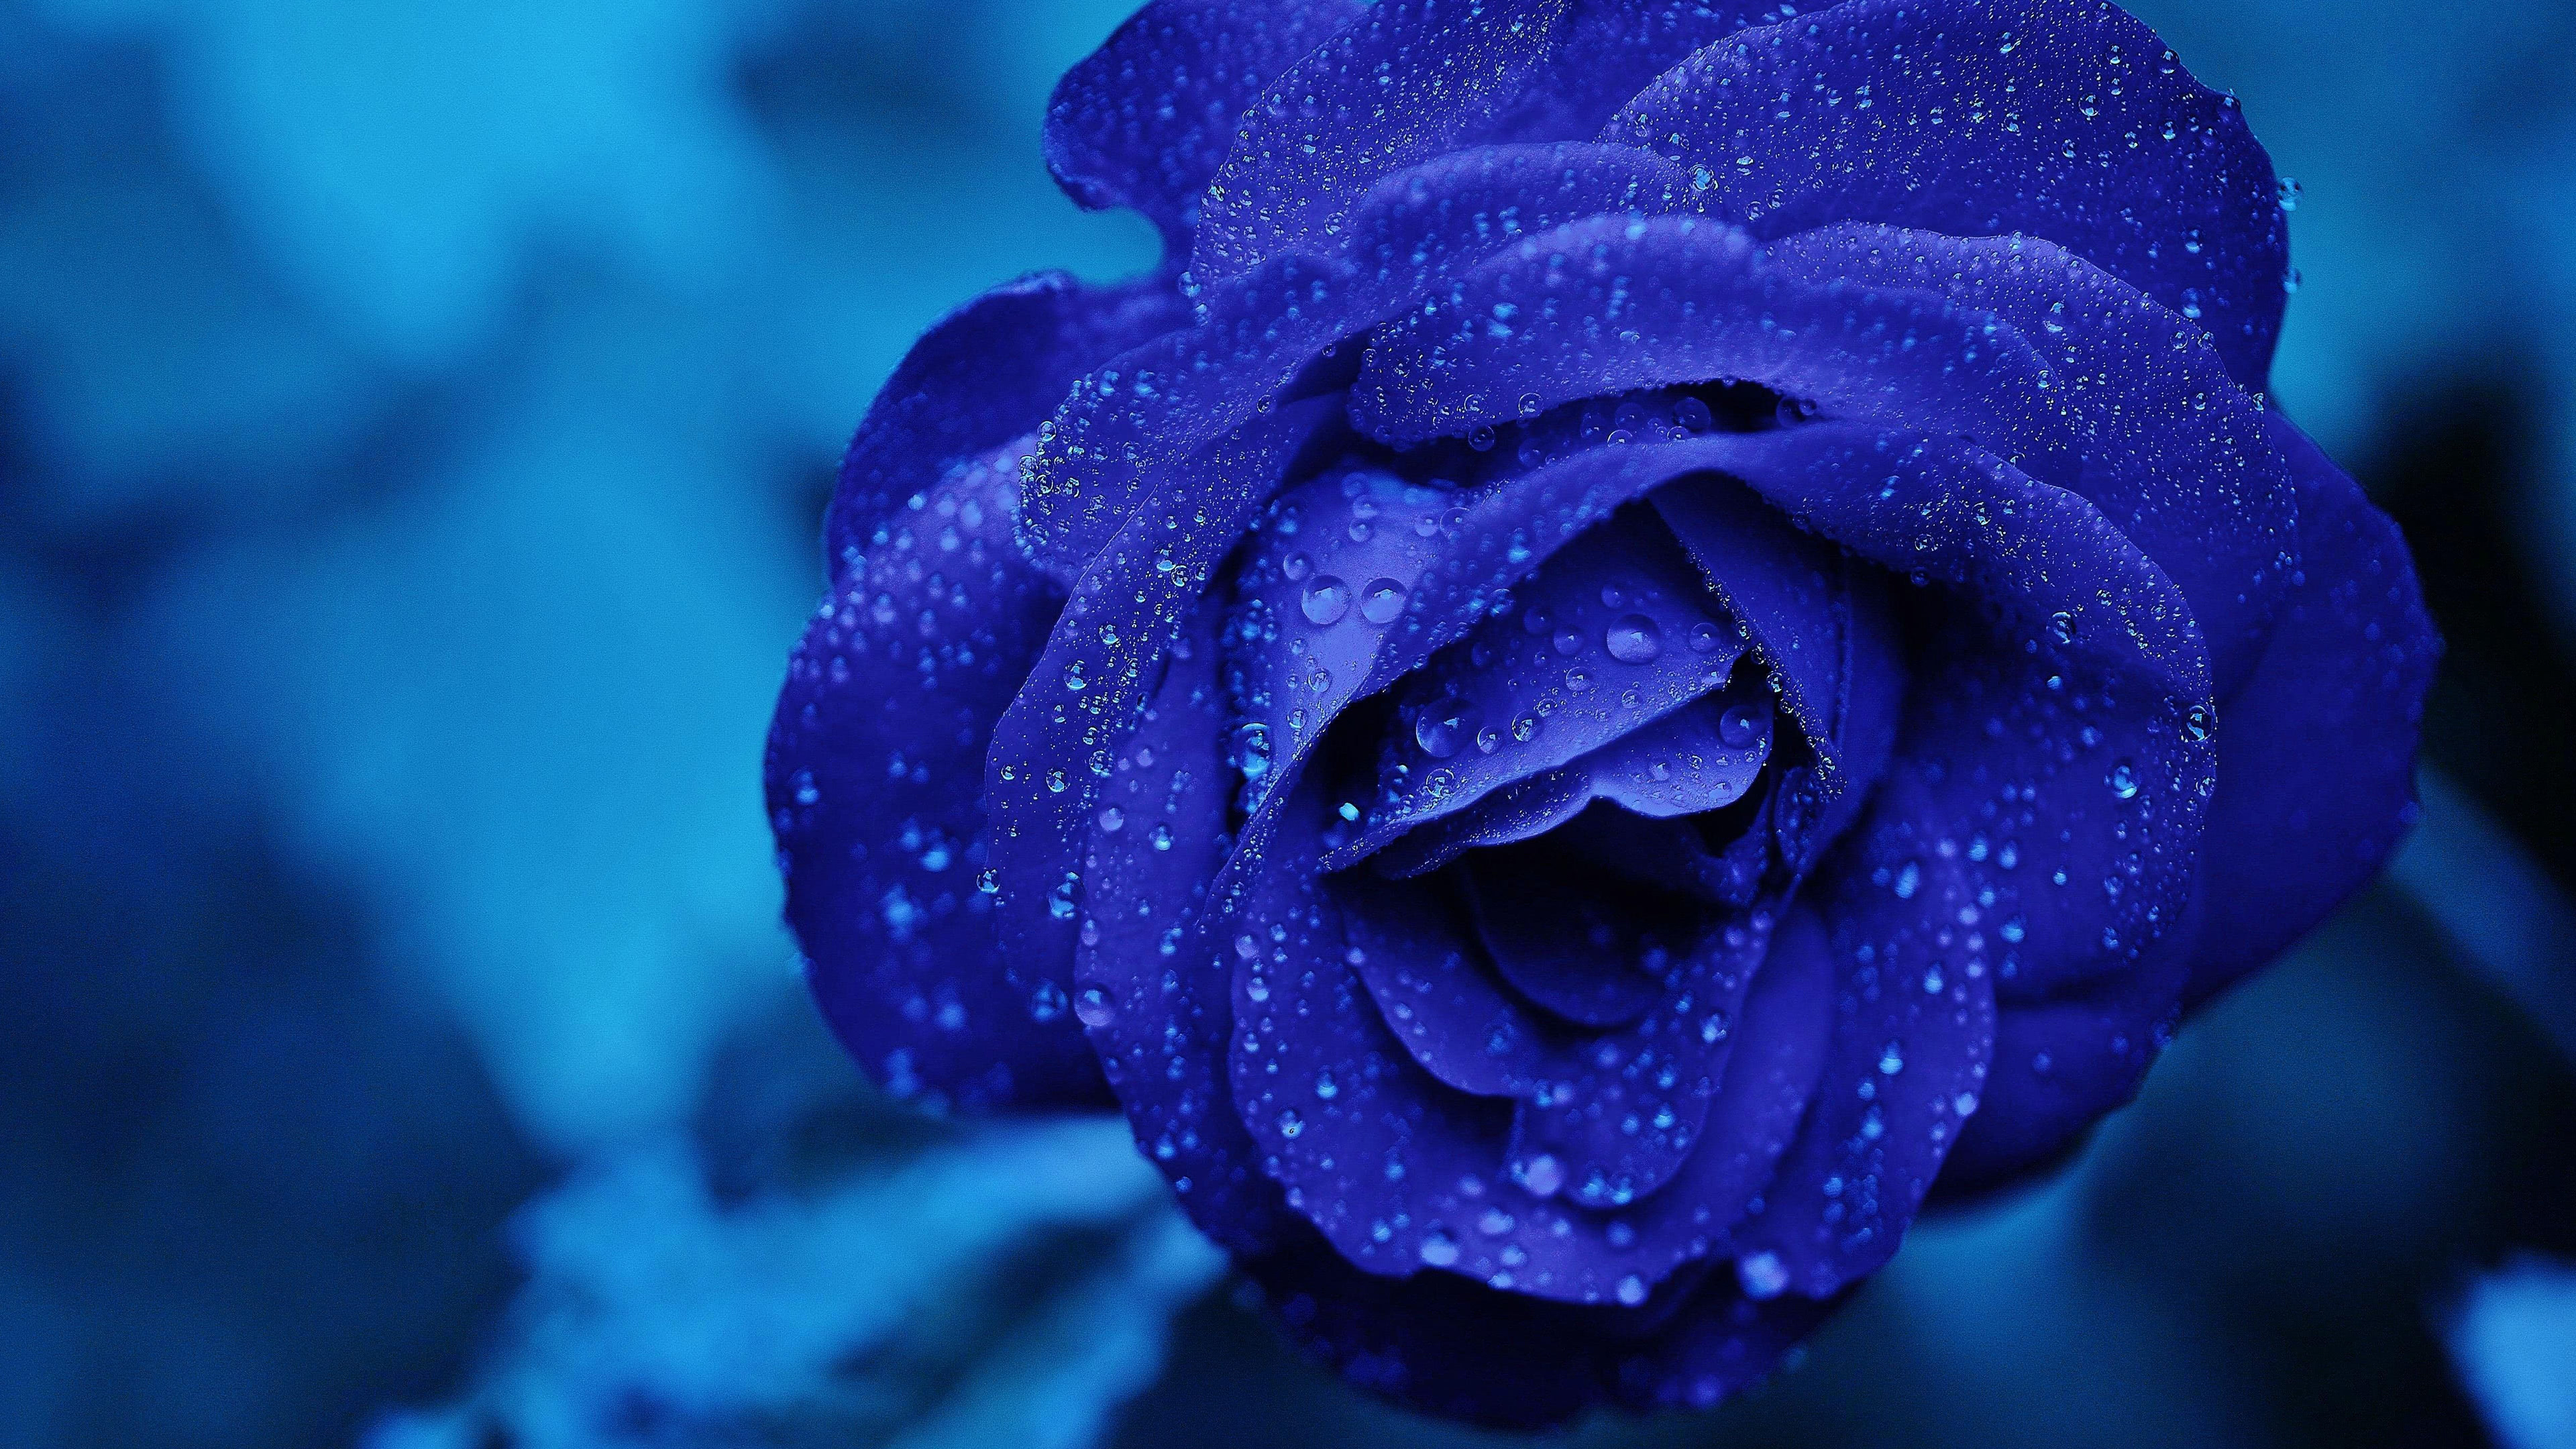 blue rose with water droplets uhd 4k wallpaper